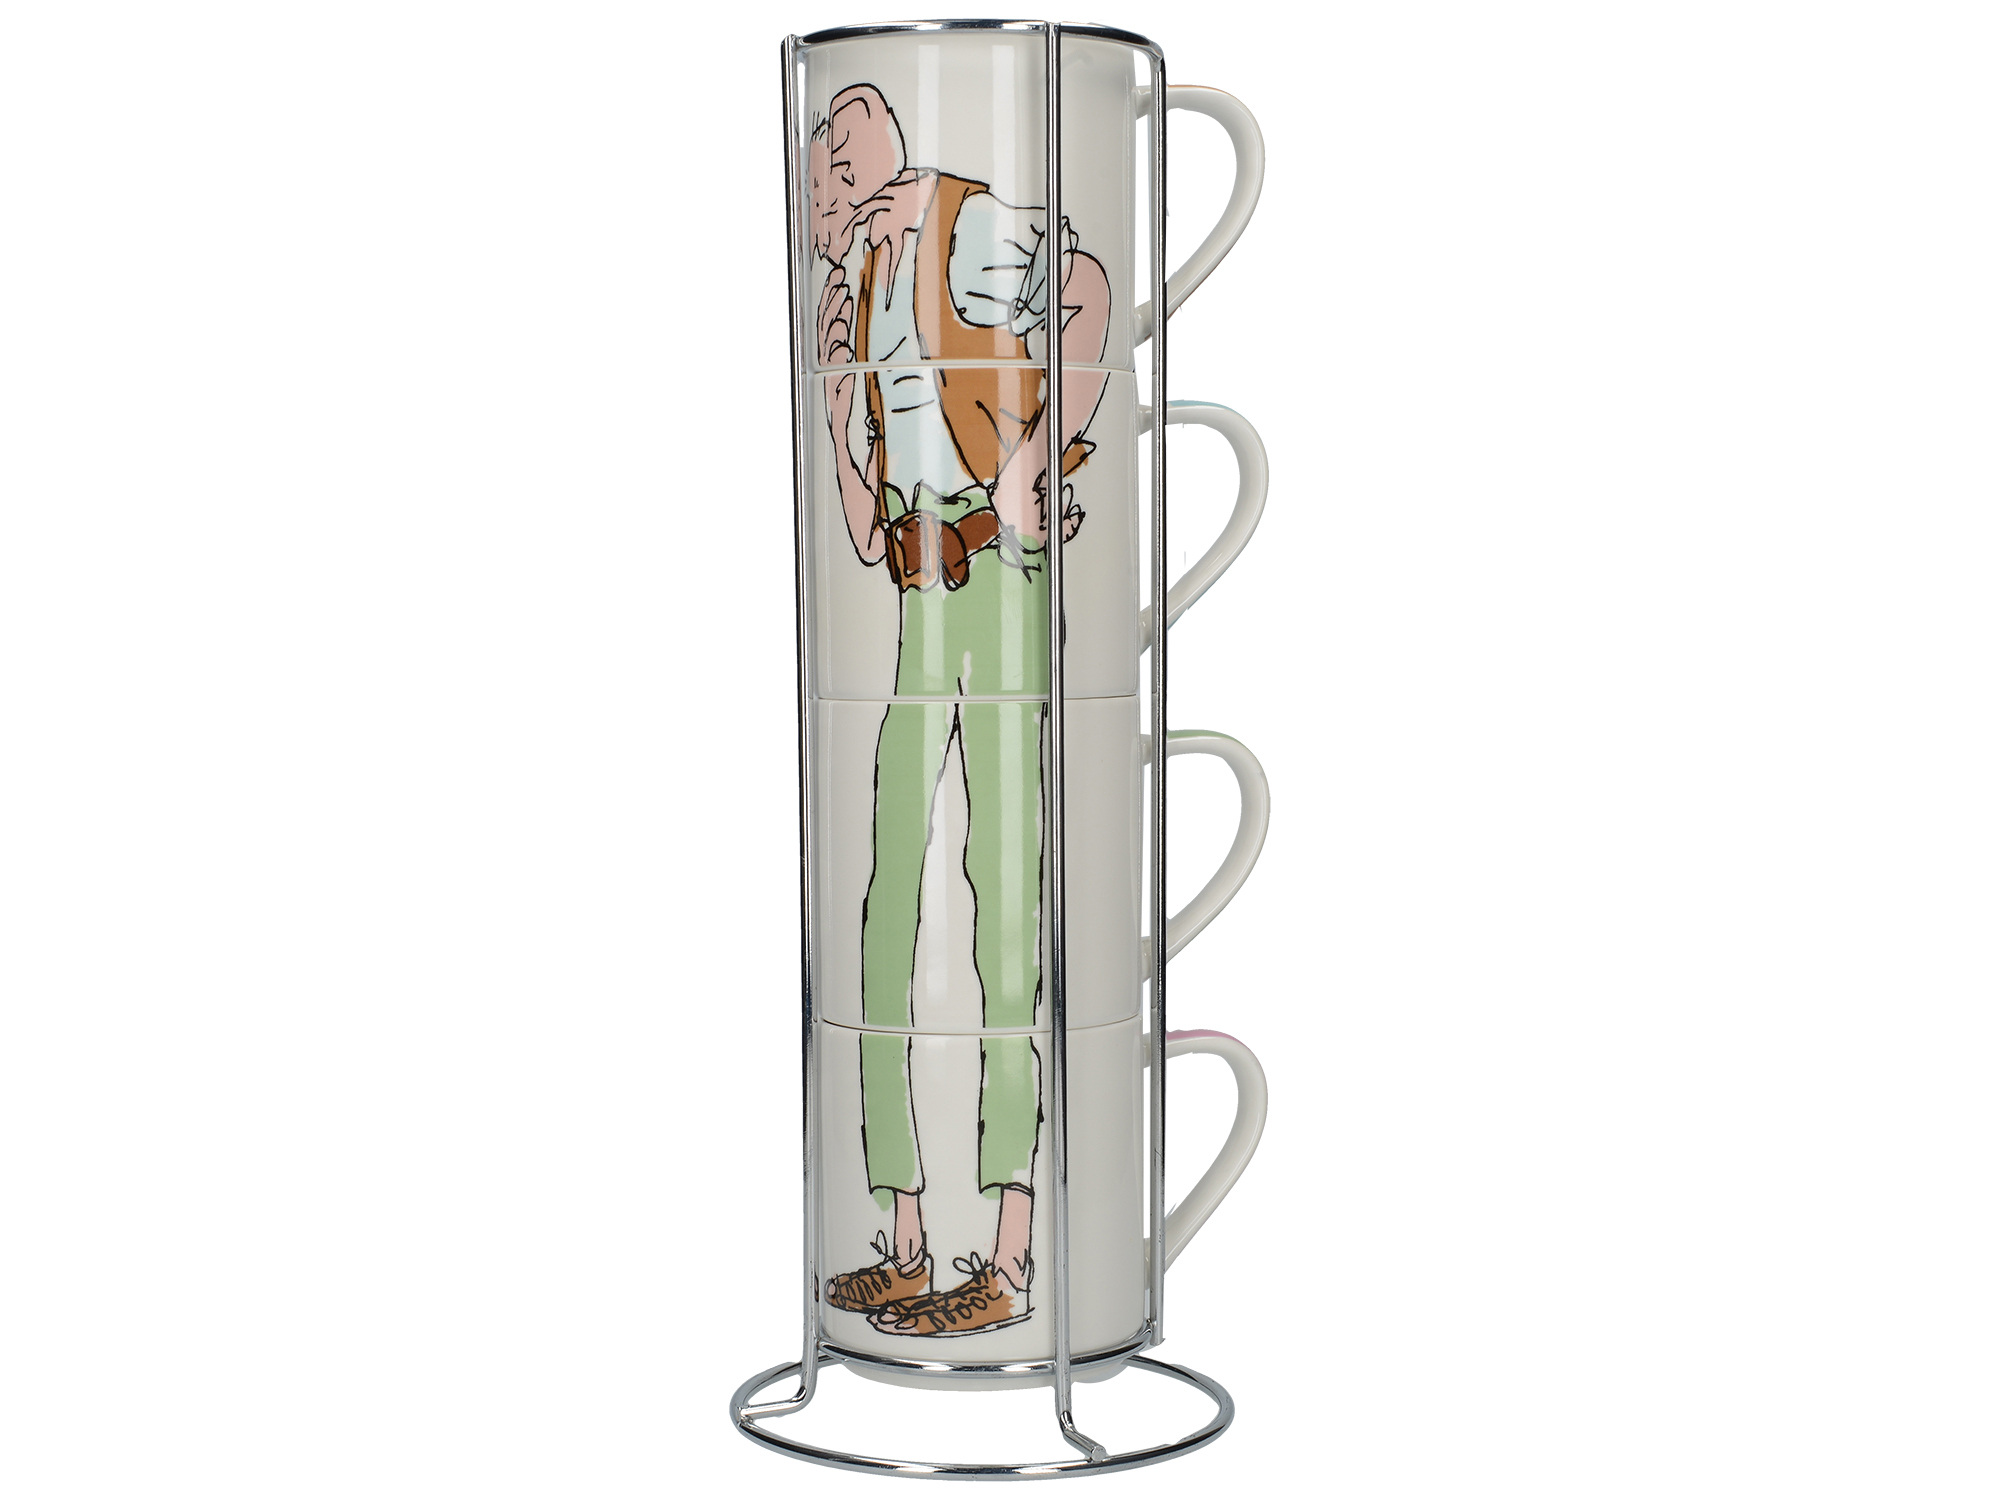 Roald Dahl Bfg Set Of 4 Stacking Mugs